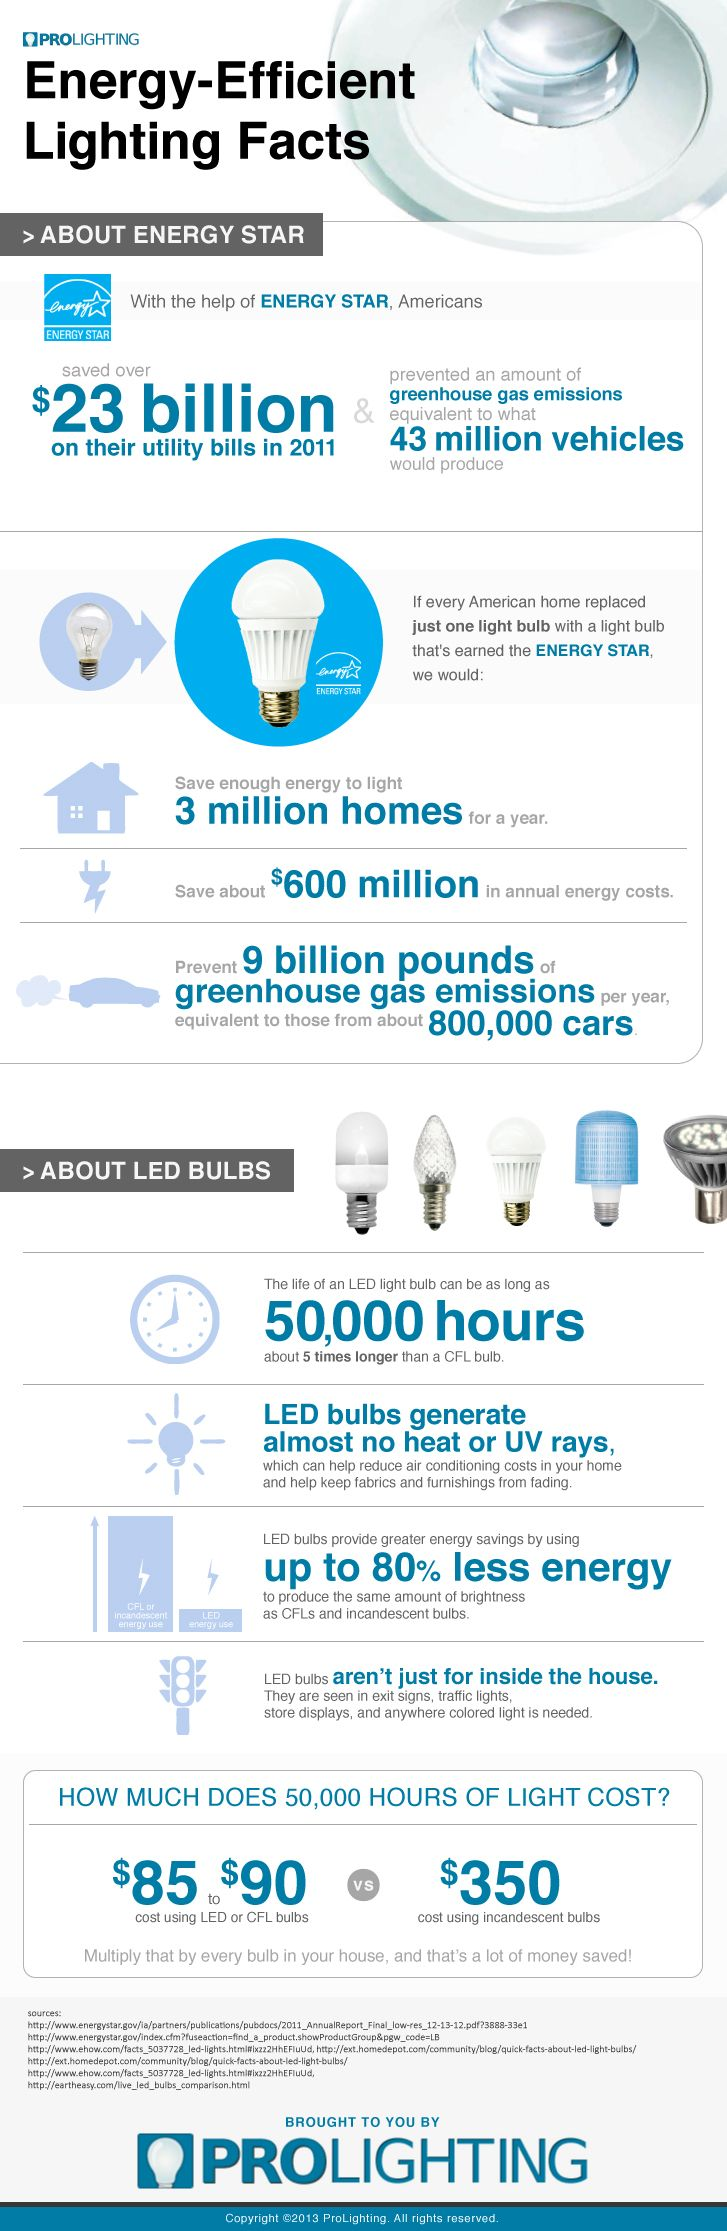 17 best images about energy efficient ideas 17 best images about energy efficient ideas electricity bill thermostats and energy consumption